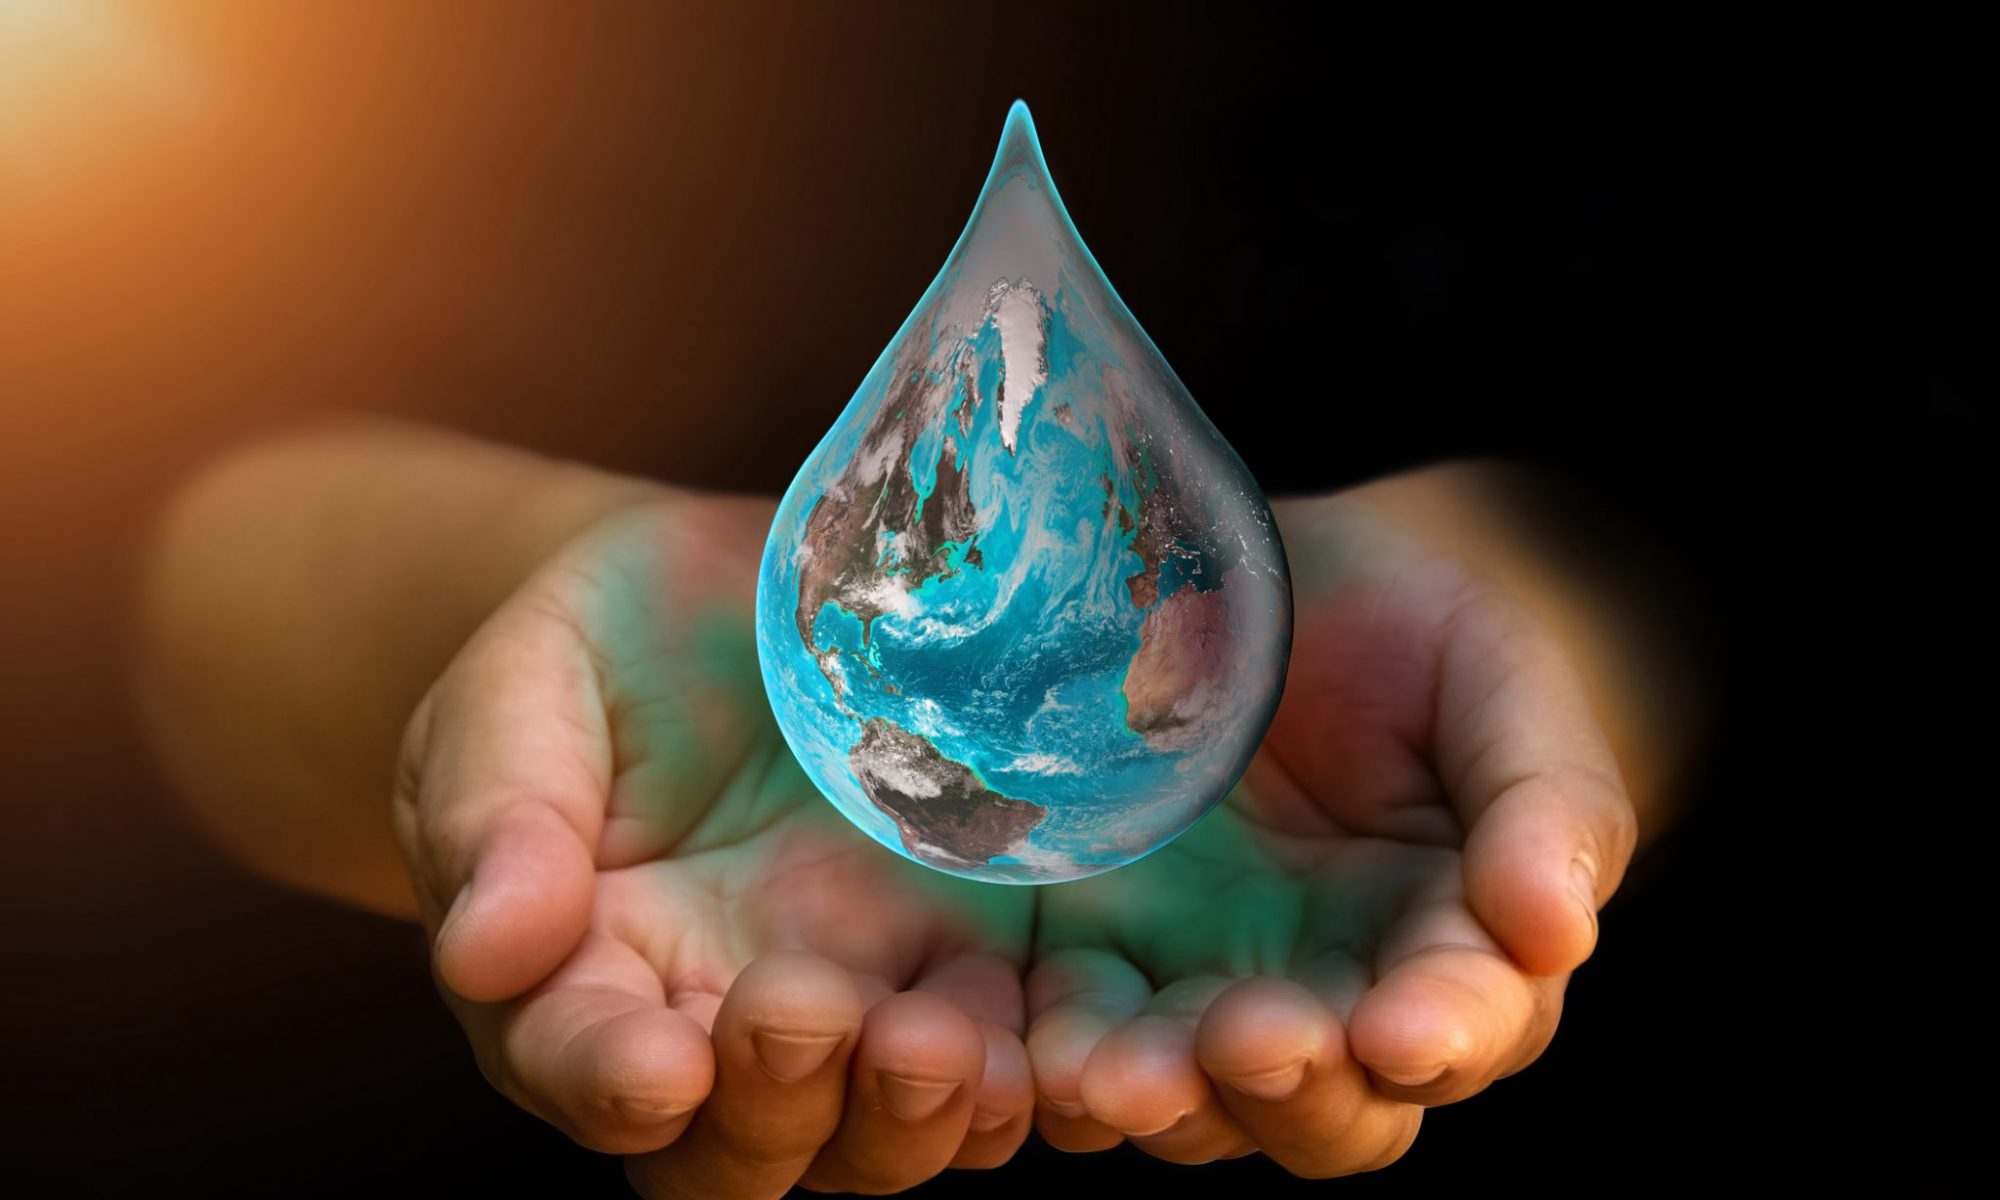 Hands cupping the earth that is shaped like a giant water droplet. Adding drops to the ocean of change.